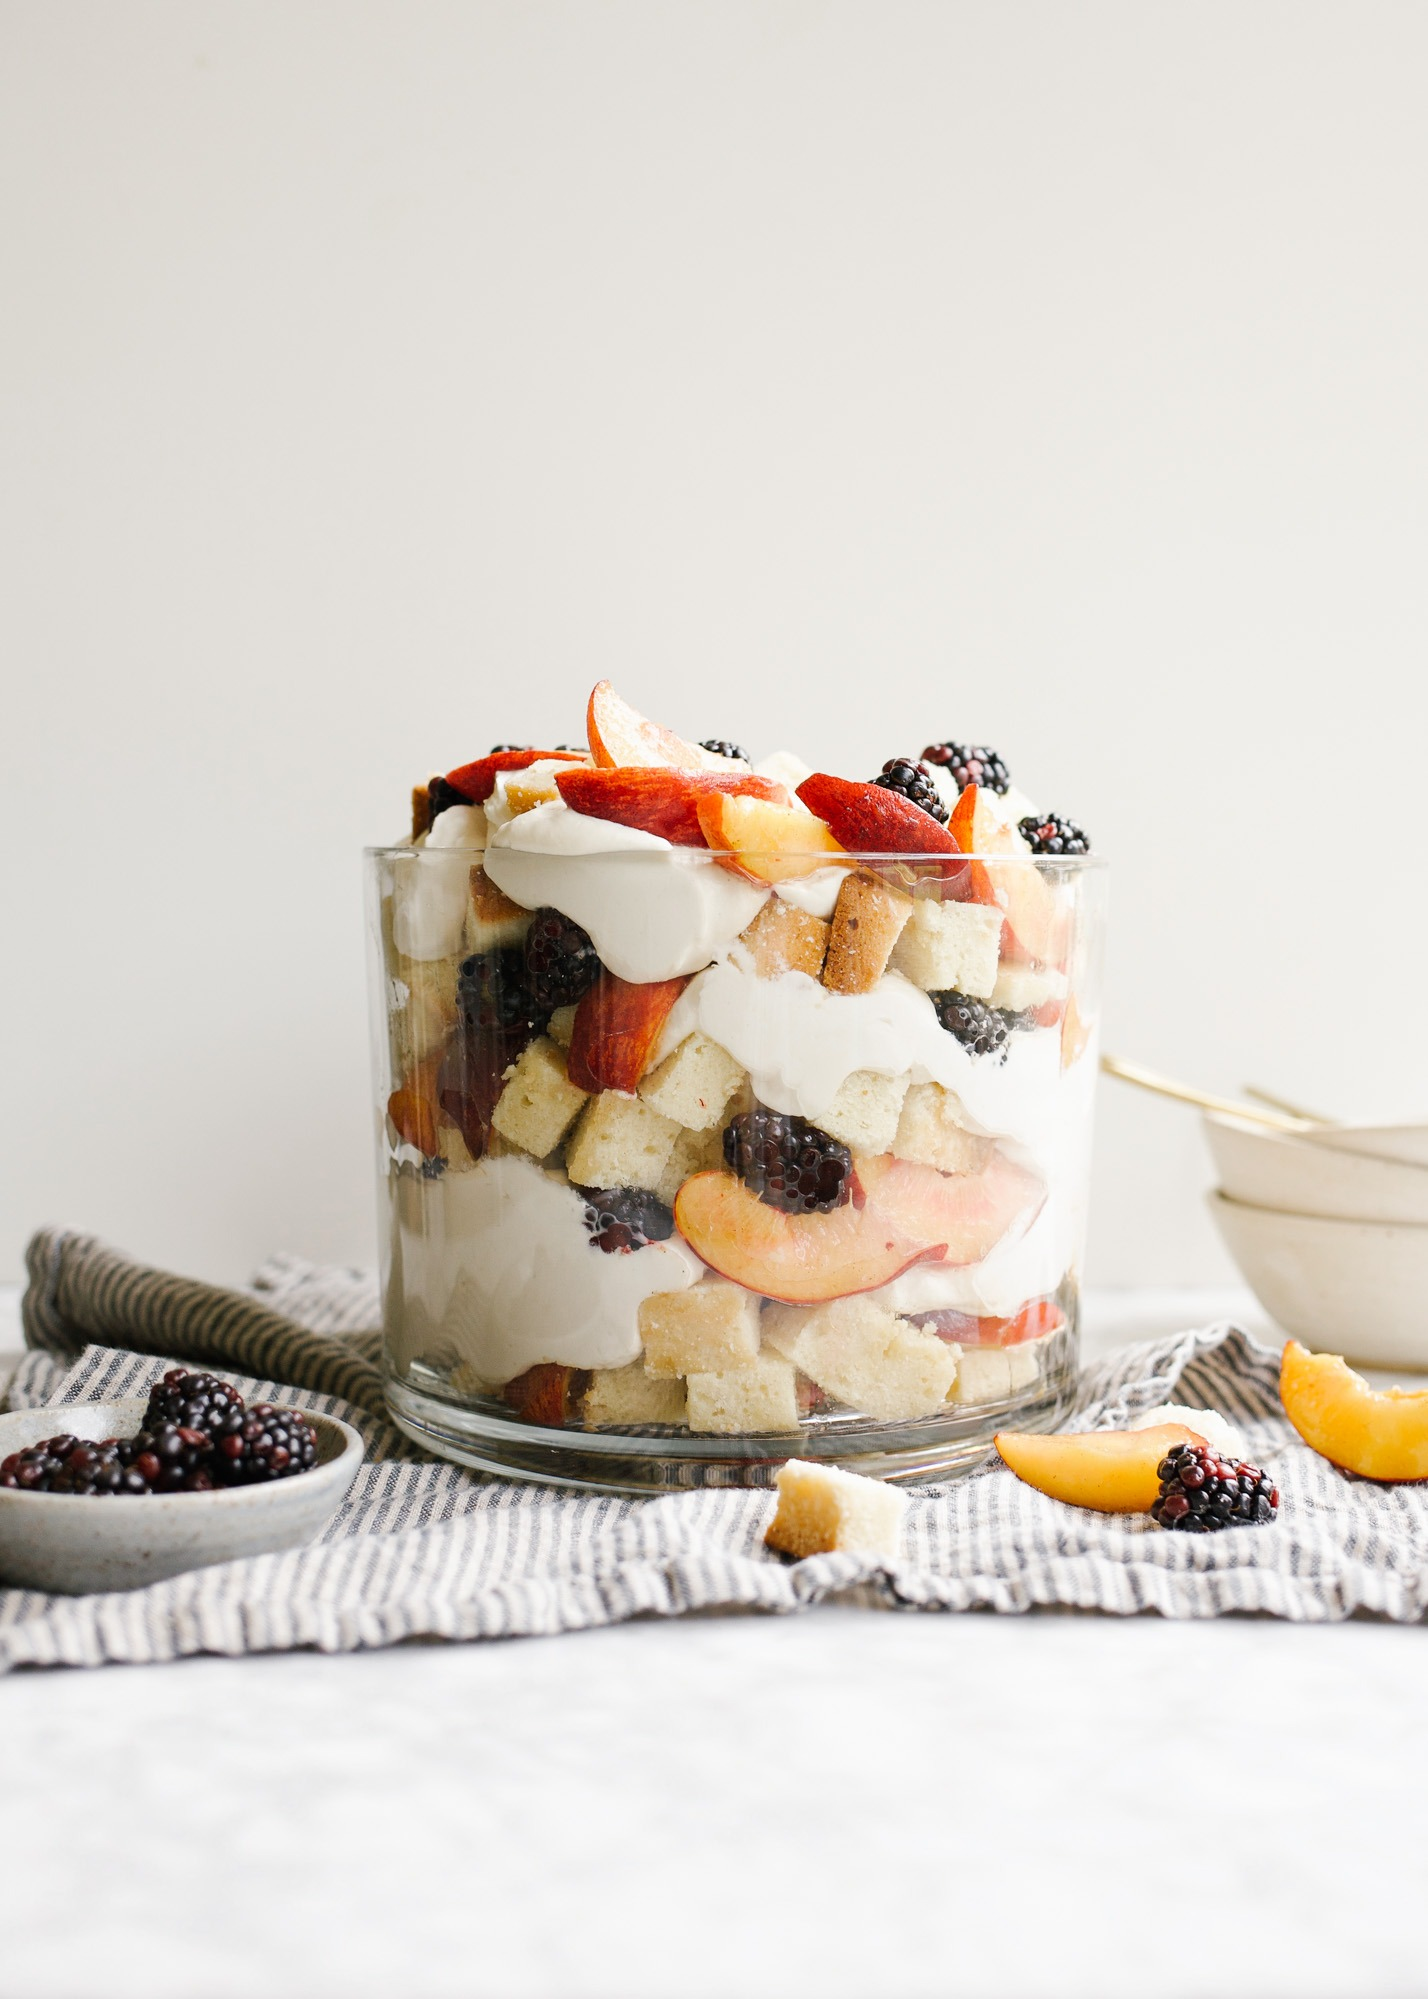 Peaches and Cream Trifle by Wood and Spoon blog. This trifle features homemade pound cake, a cream cheese whipped cream, and fresh sugared summer peaches. Add a few berries or you other favorite summer fruit to make this a festive and colorful dessert to serve a crowd for warm weather gatherings. You can make this ahead or use store-bought pound cake! Find more about the recipe on thewoodandspoon.com